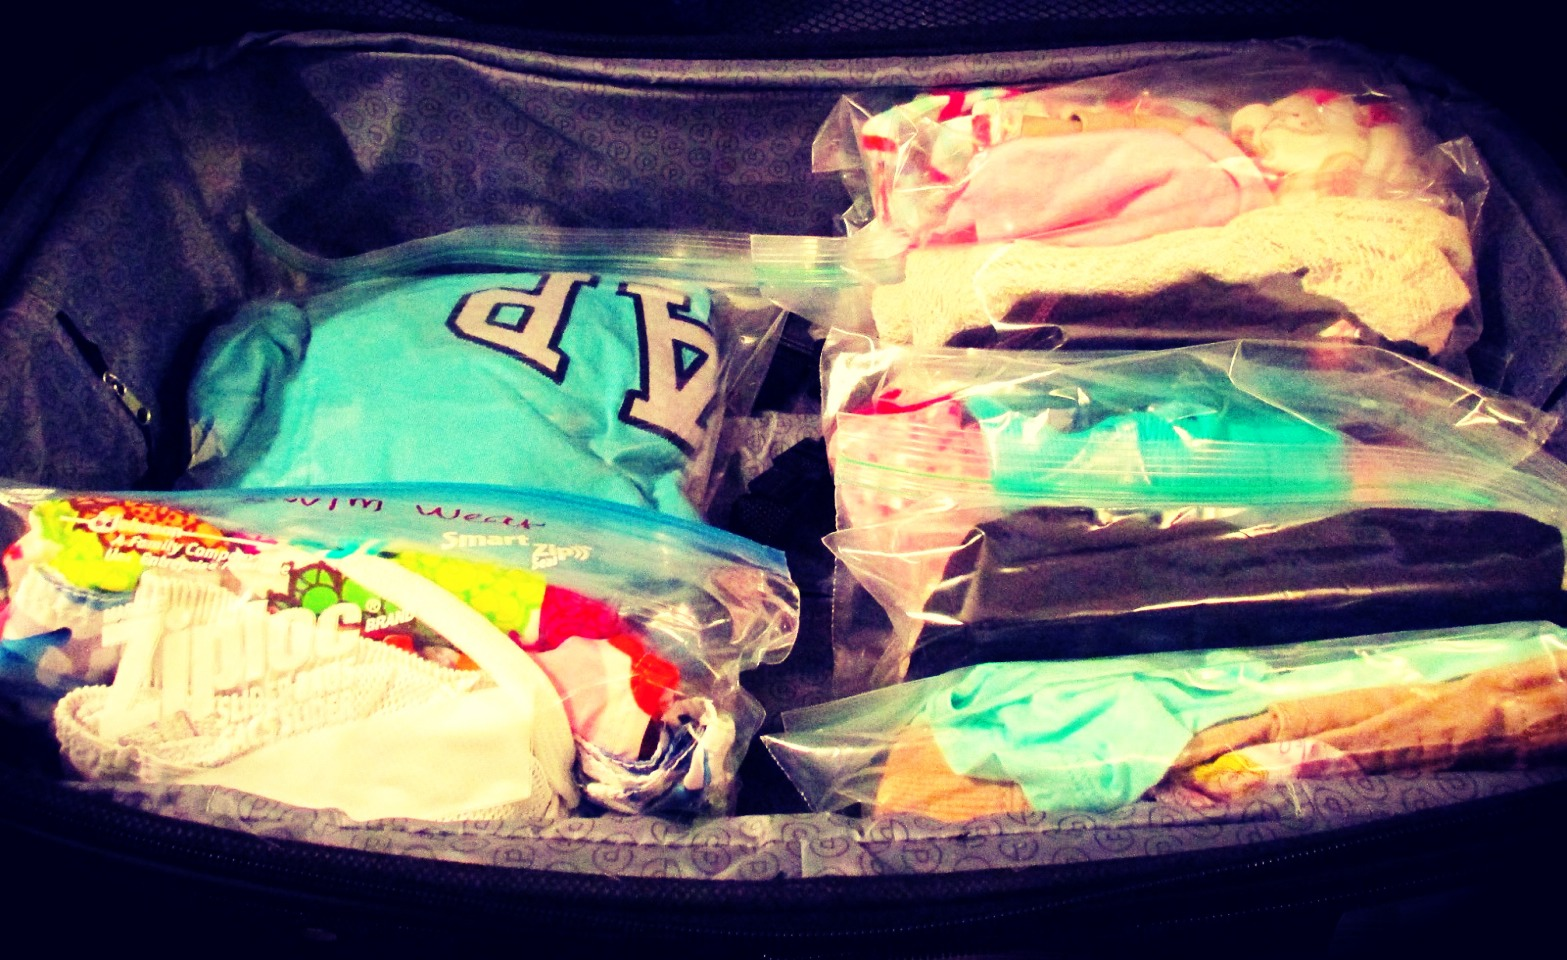 When packing to go on a trip that is 3-7 days, pack outfits in ziploc bags. This allows for more room in a suitcase for toiletries and shoes! Could also prevent you from paying checked bag fees at airports if you can pack in just a carry on!